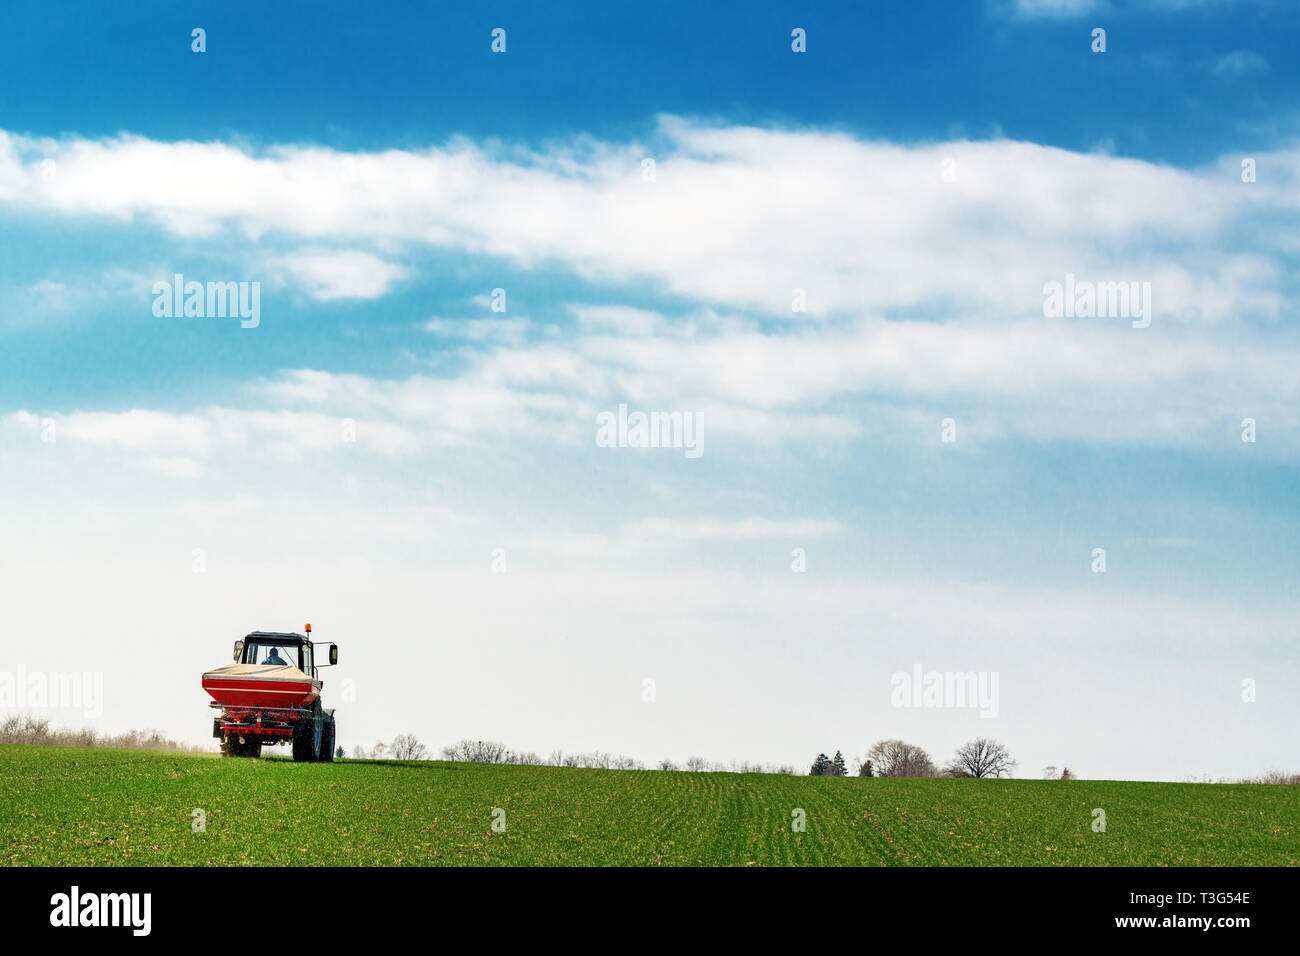 Unrecognizable farmer in agricultural tractor is fertilizing wheat crop field with NPK fertilizer nutrients - Stock Image